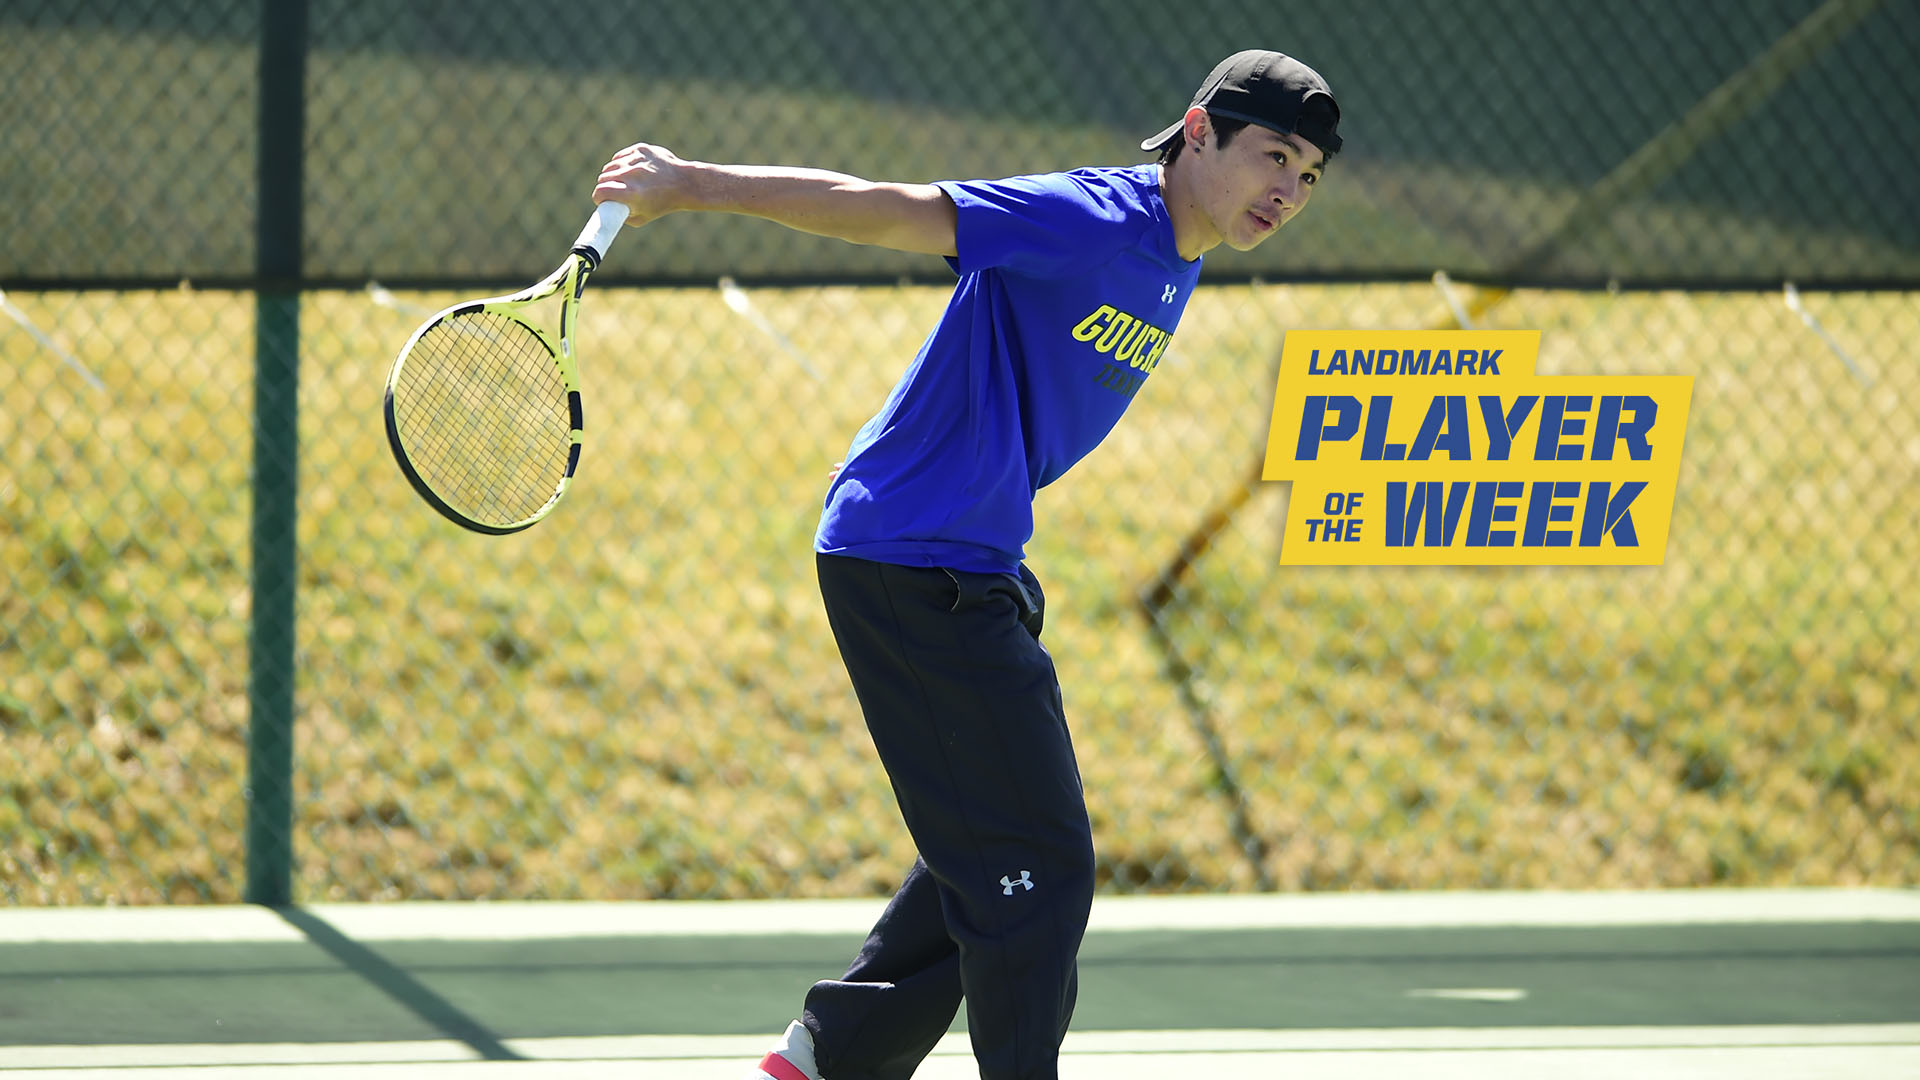 Goucher's Tetsuya Ota Secures Sixth Landmark Conference Men's Tennis Athlete Of The Week Honor